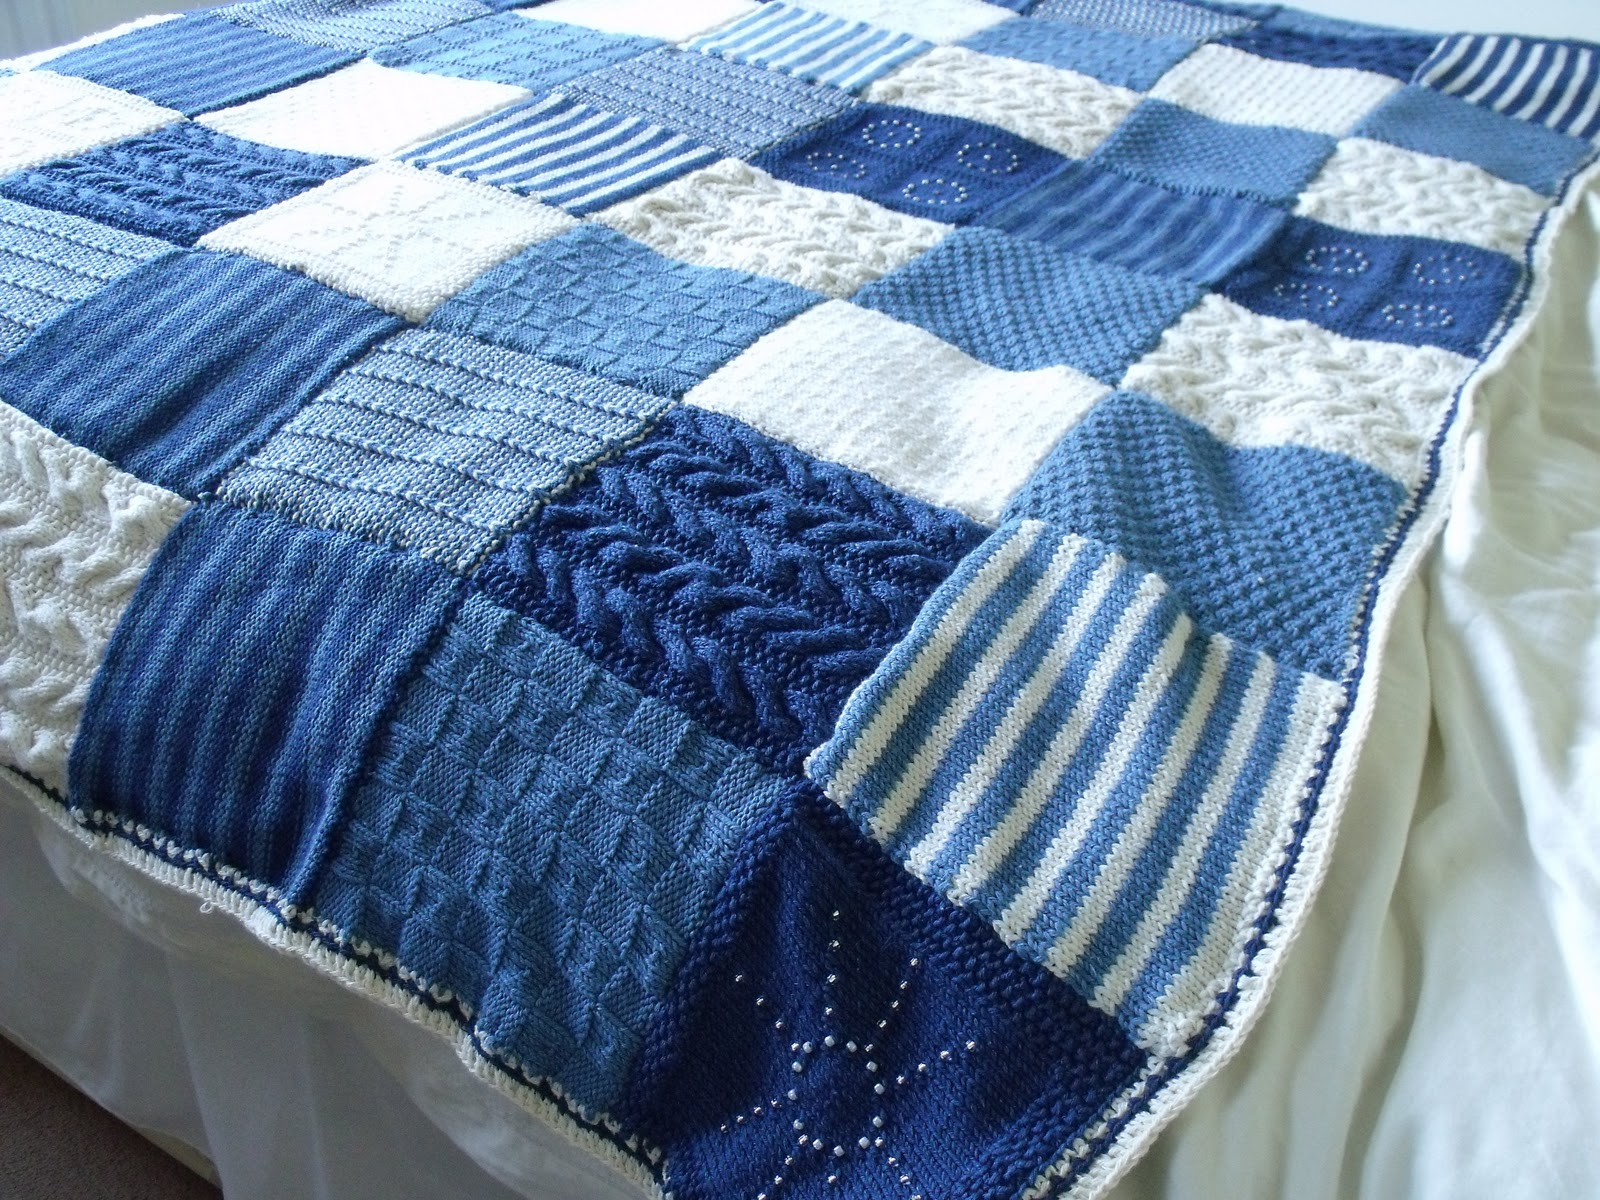 Knit Quilt Patterns : Knit It, Grow It, Cook It: Knitted blanket finished.